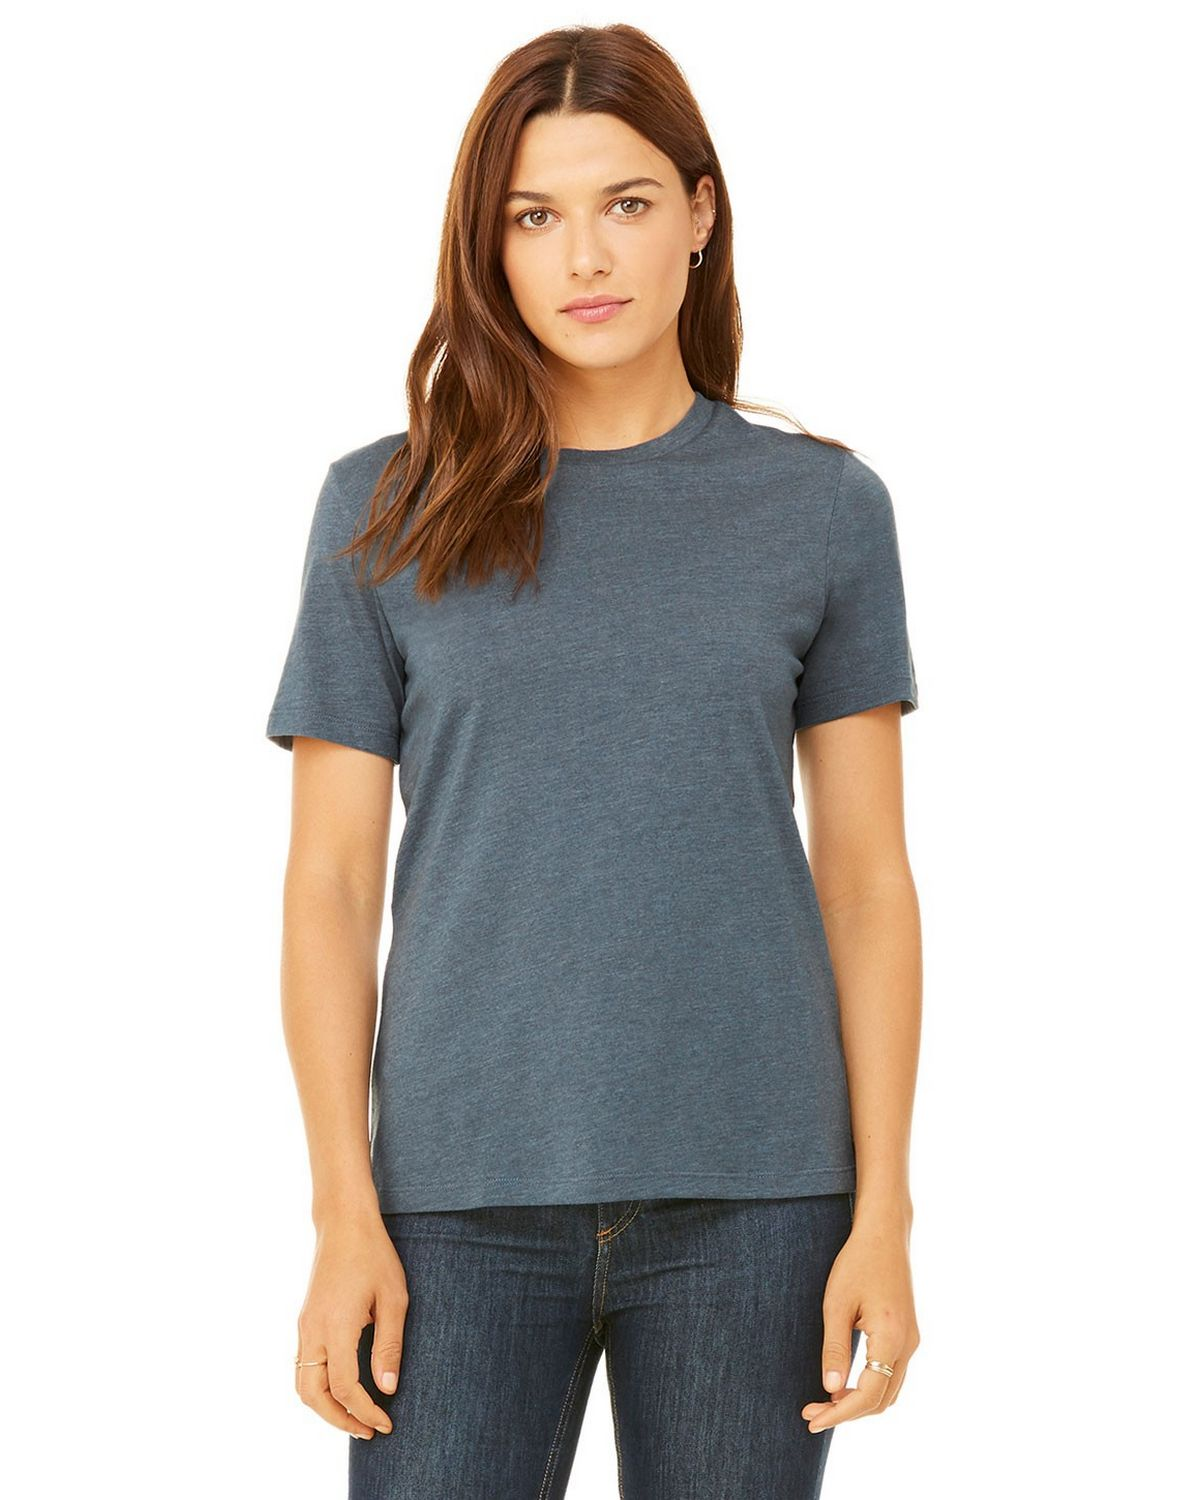 Bella + Canvas B6400 Women's Missys Relaxed Jersey Short-Sleeve T-Shirt - Heather Slate - S from Bella + Canvas